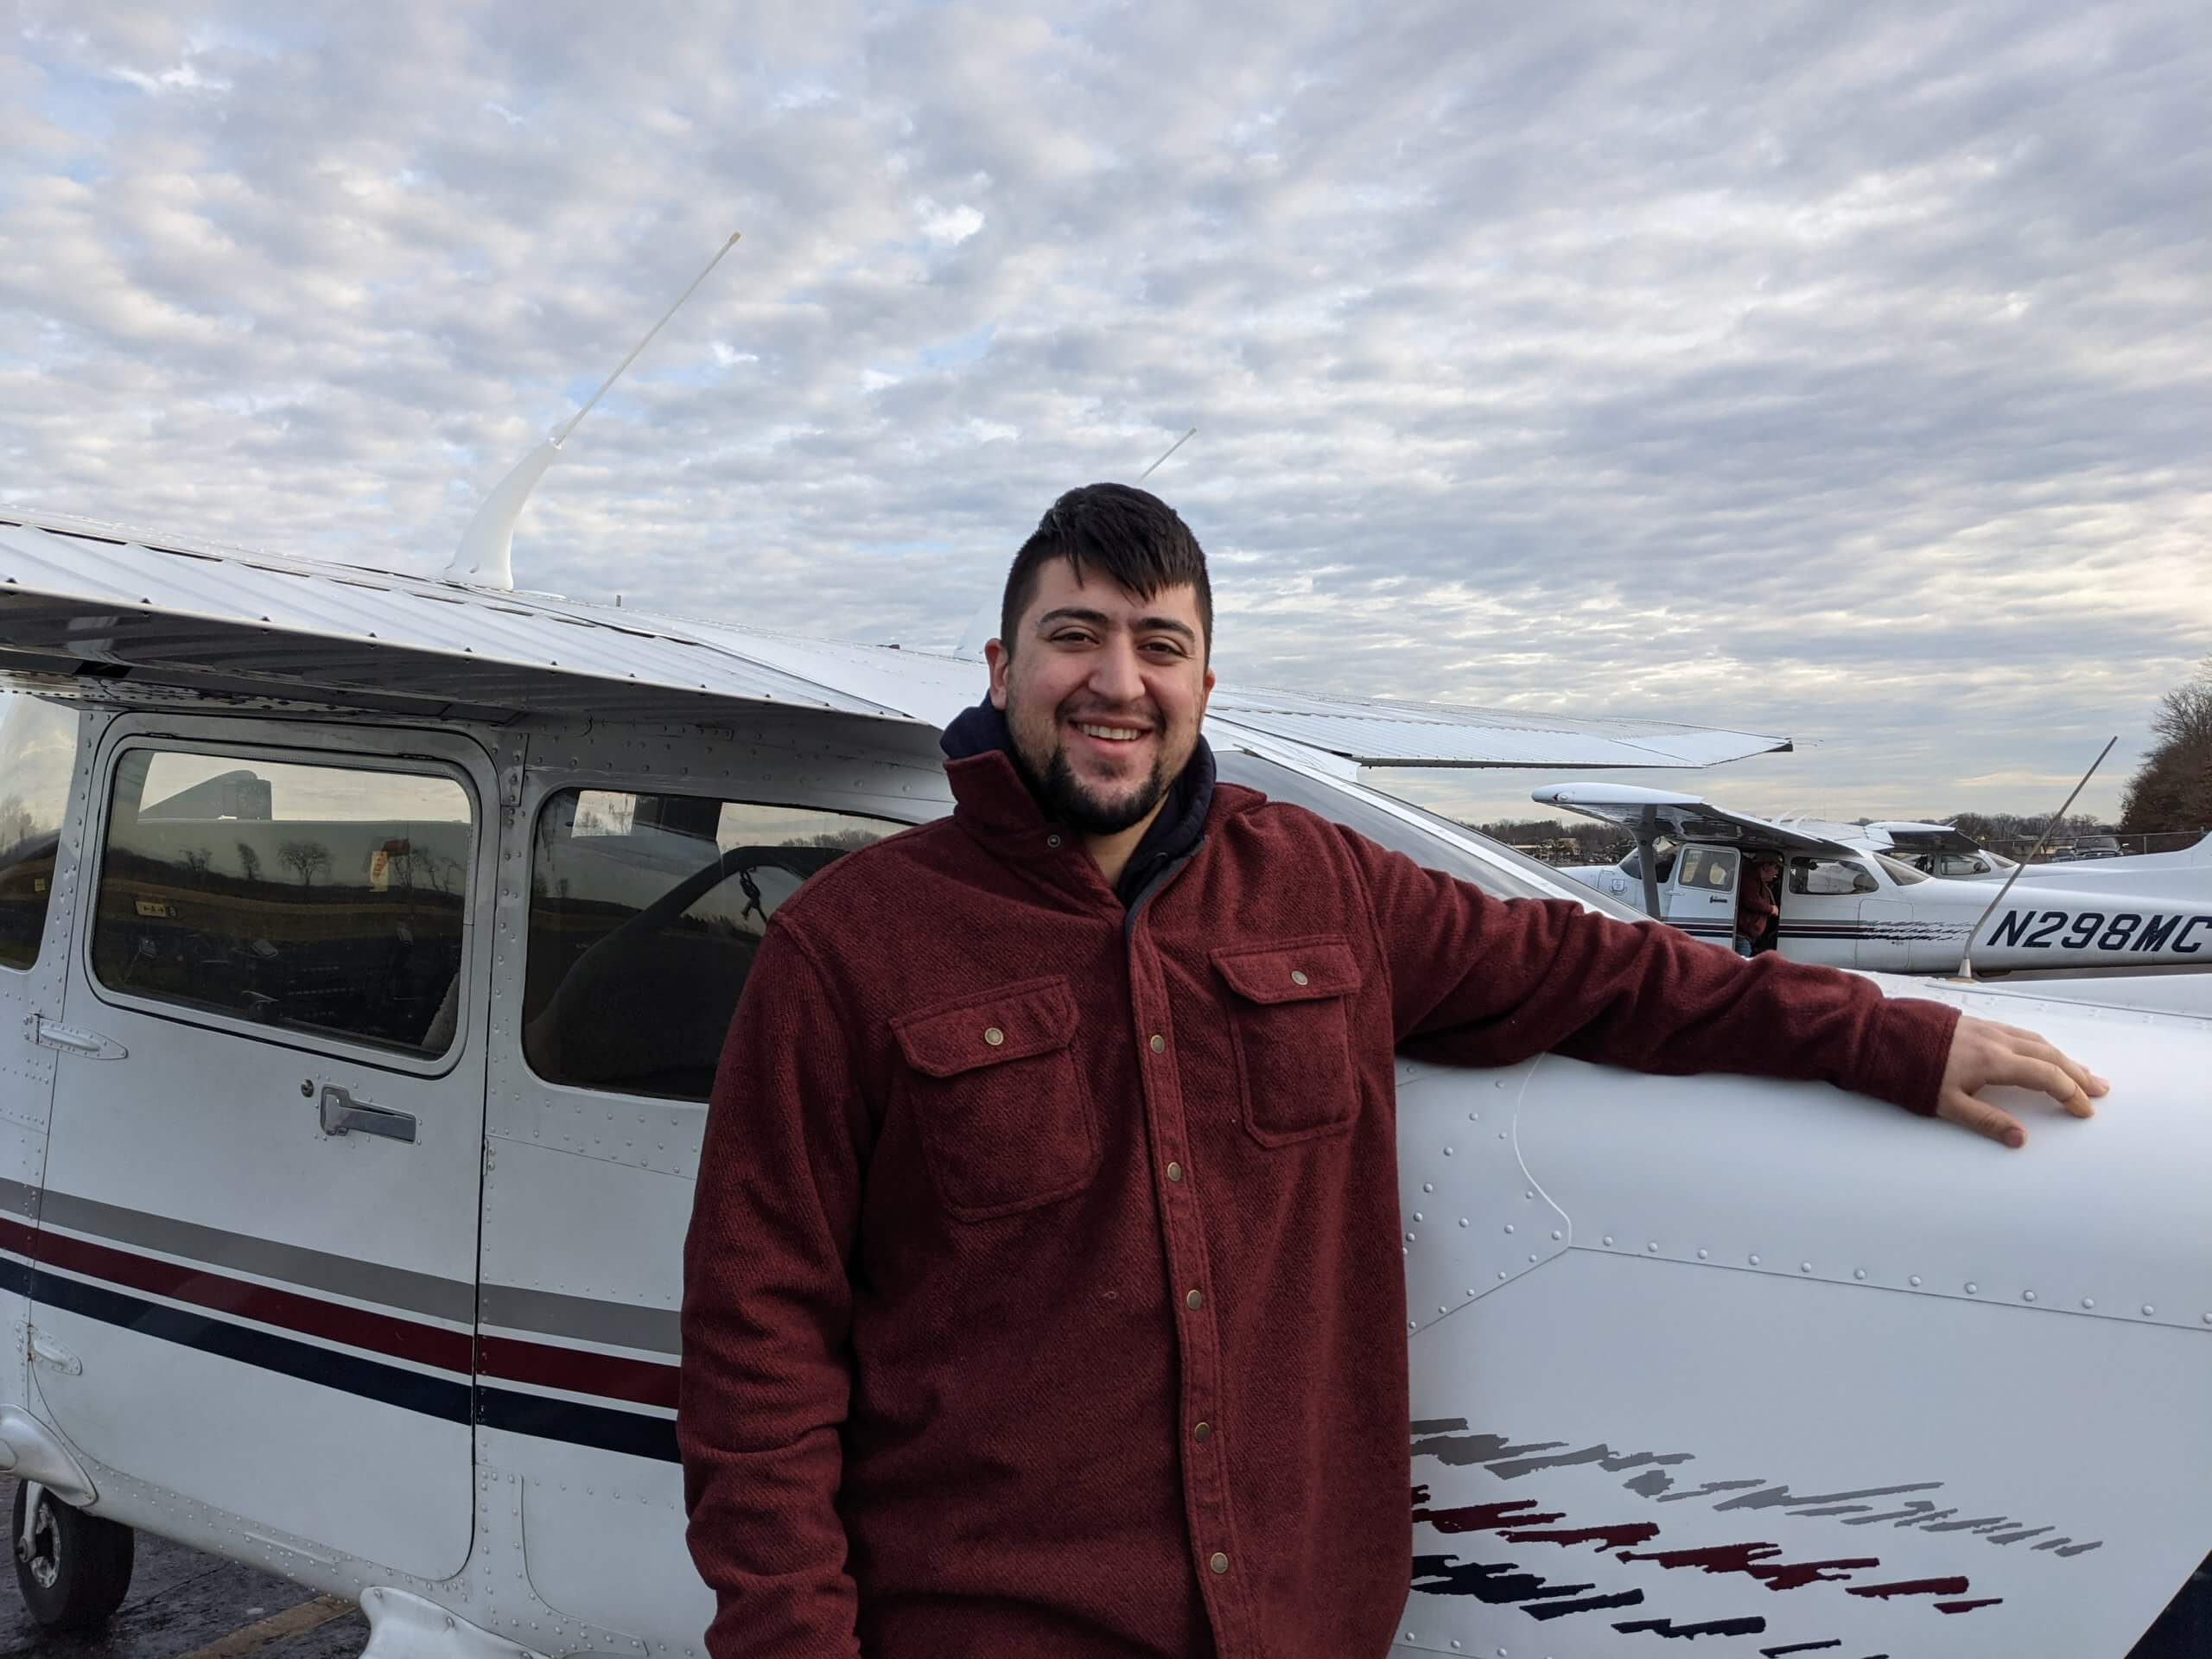 Nick Pengue - CFI at Princeton Flying School